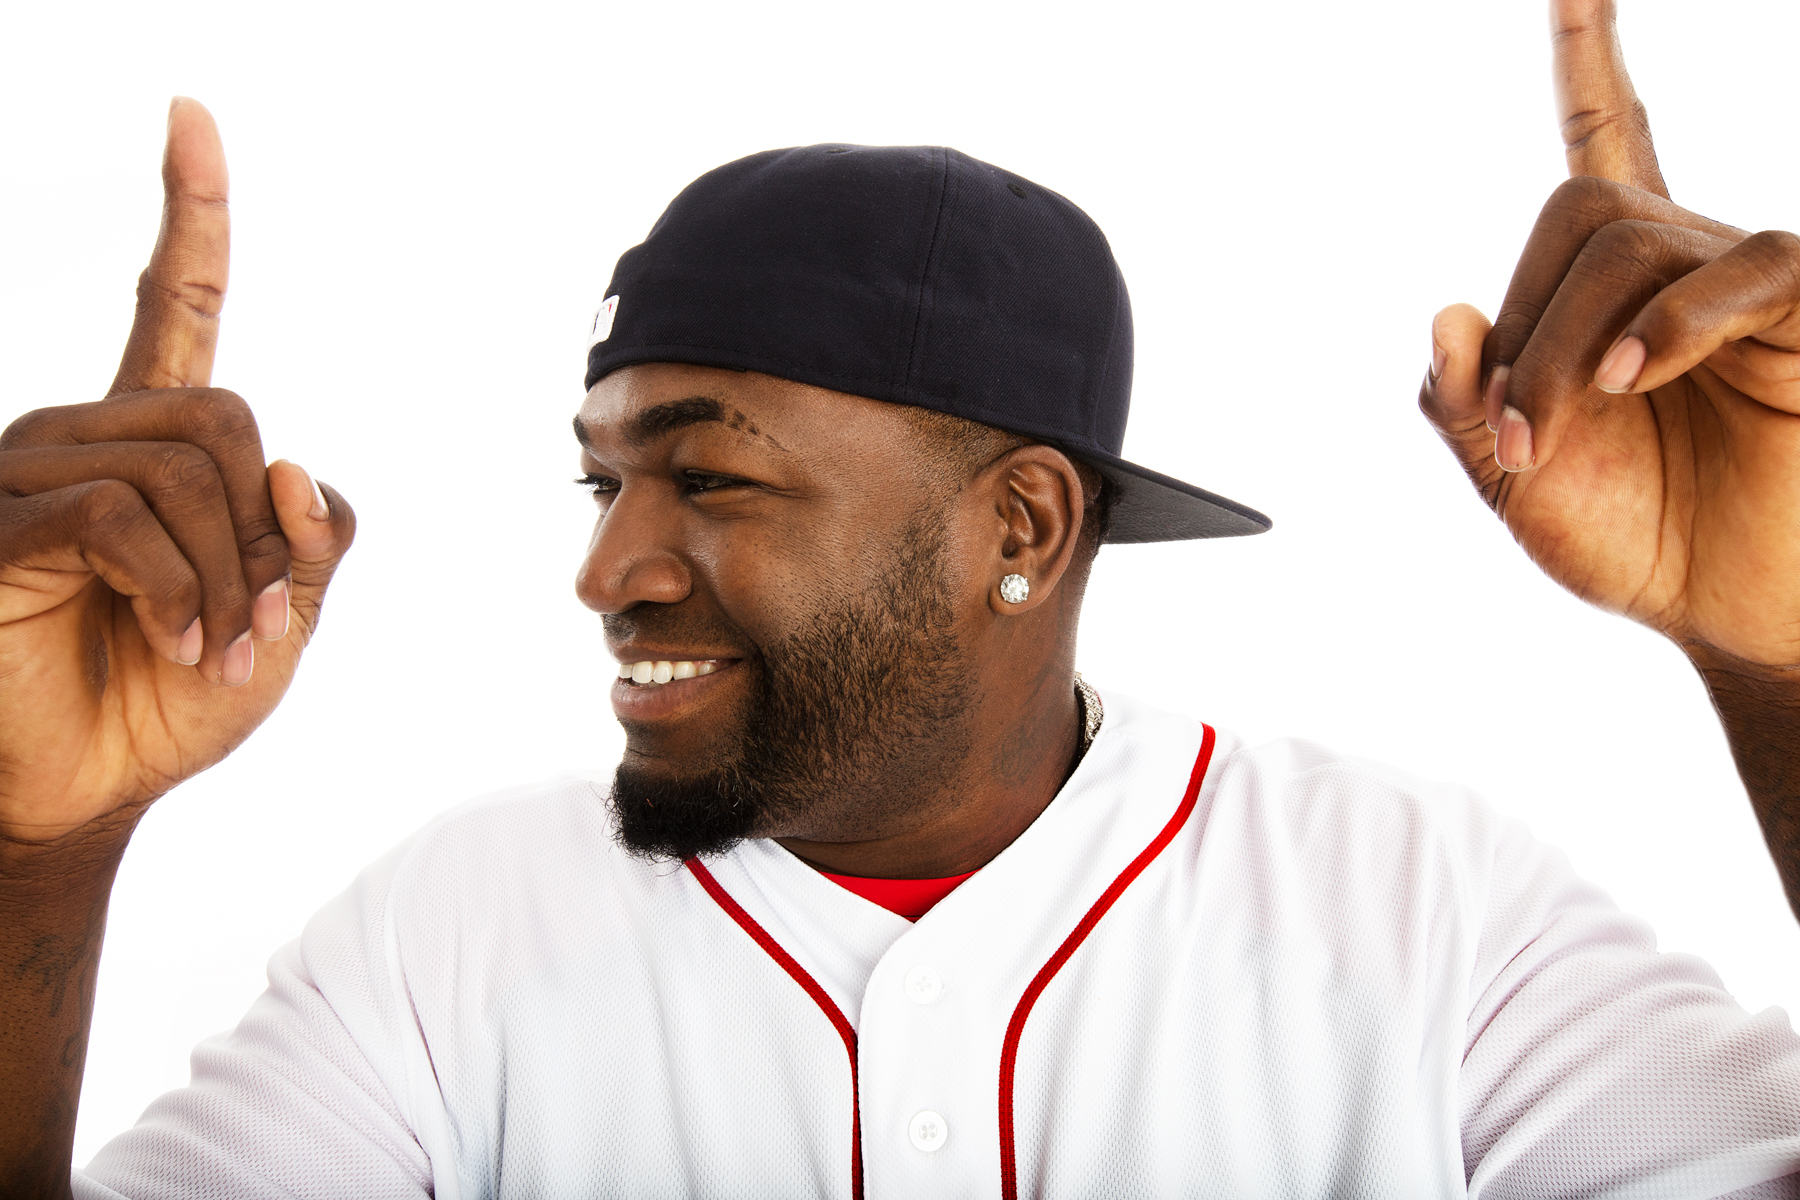 David Ortiz by Boston based commercial portrait photographer Brian Nevins